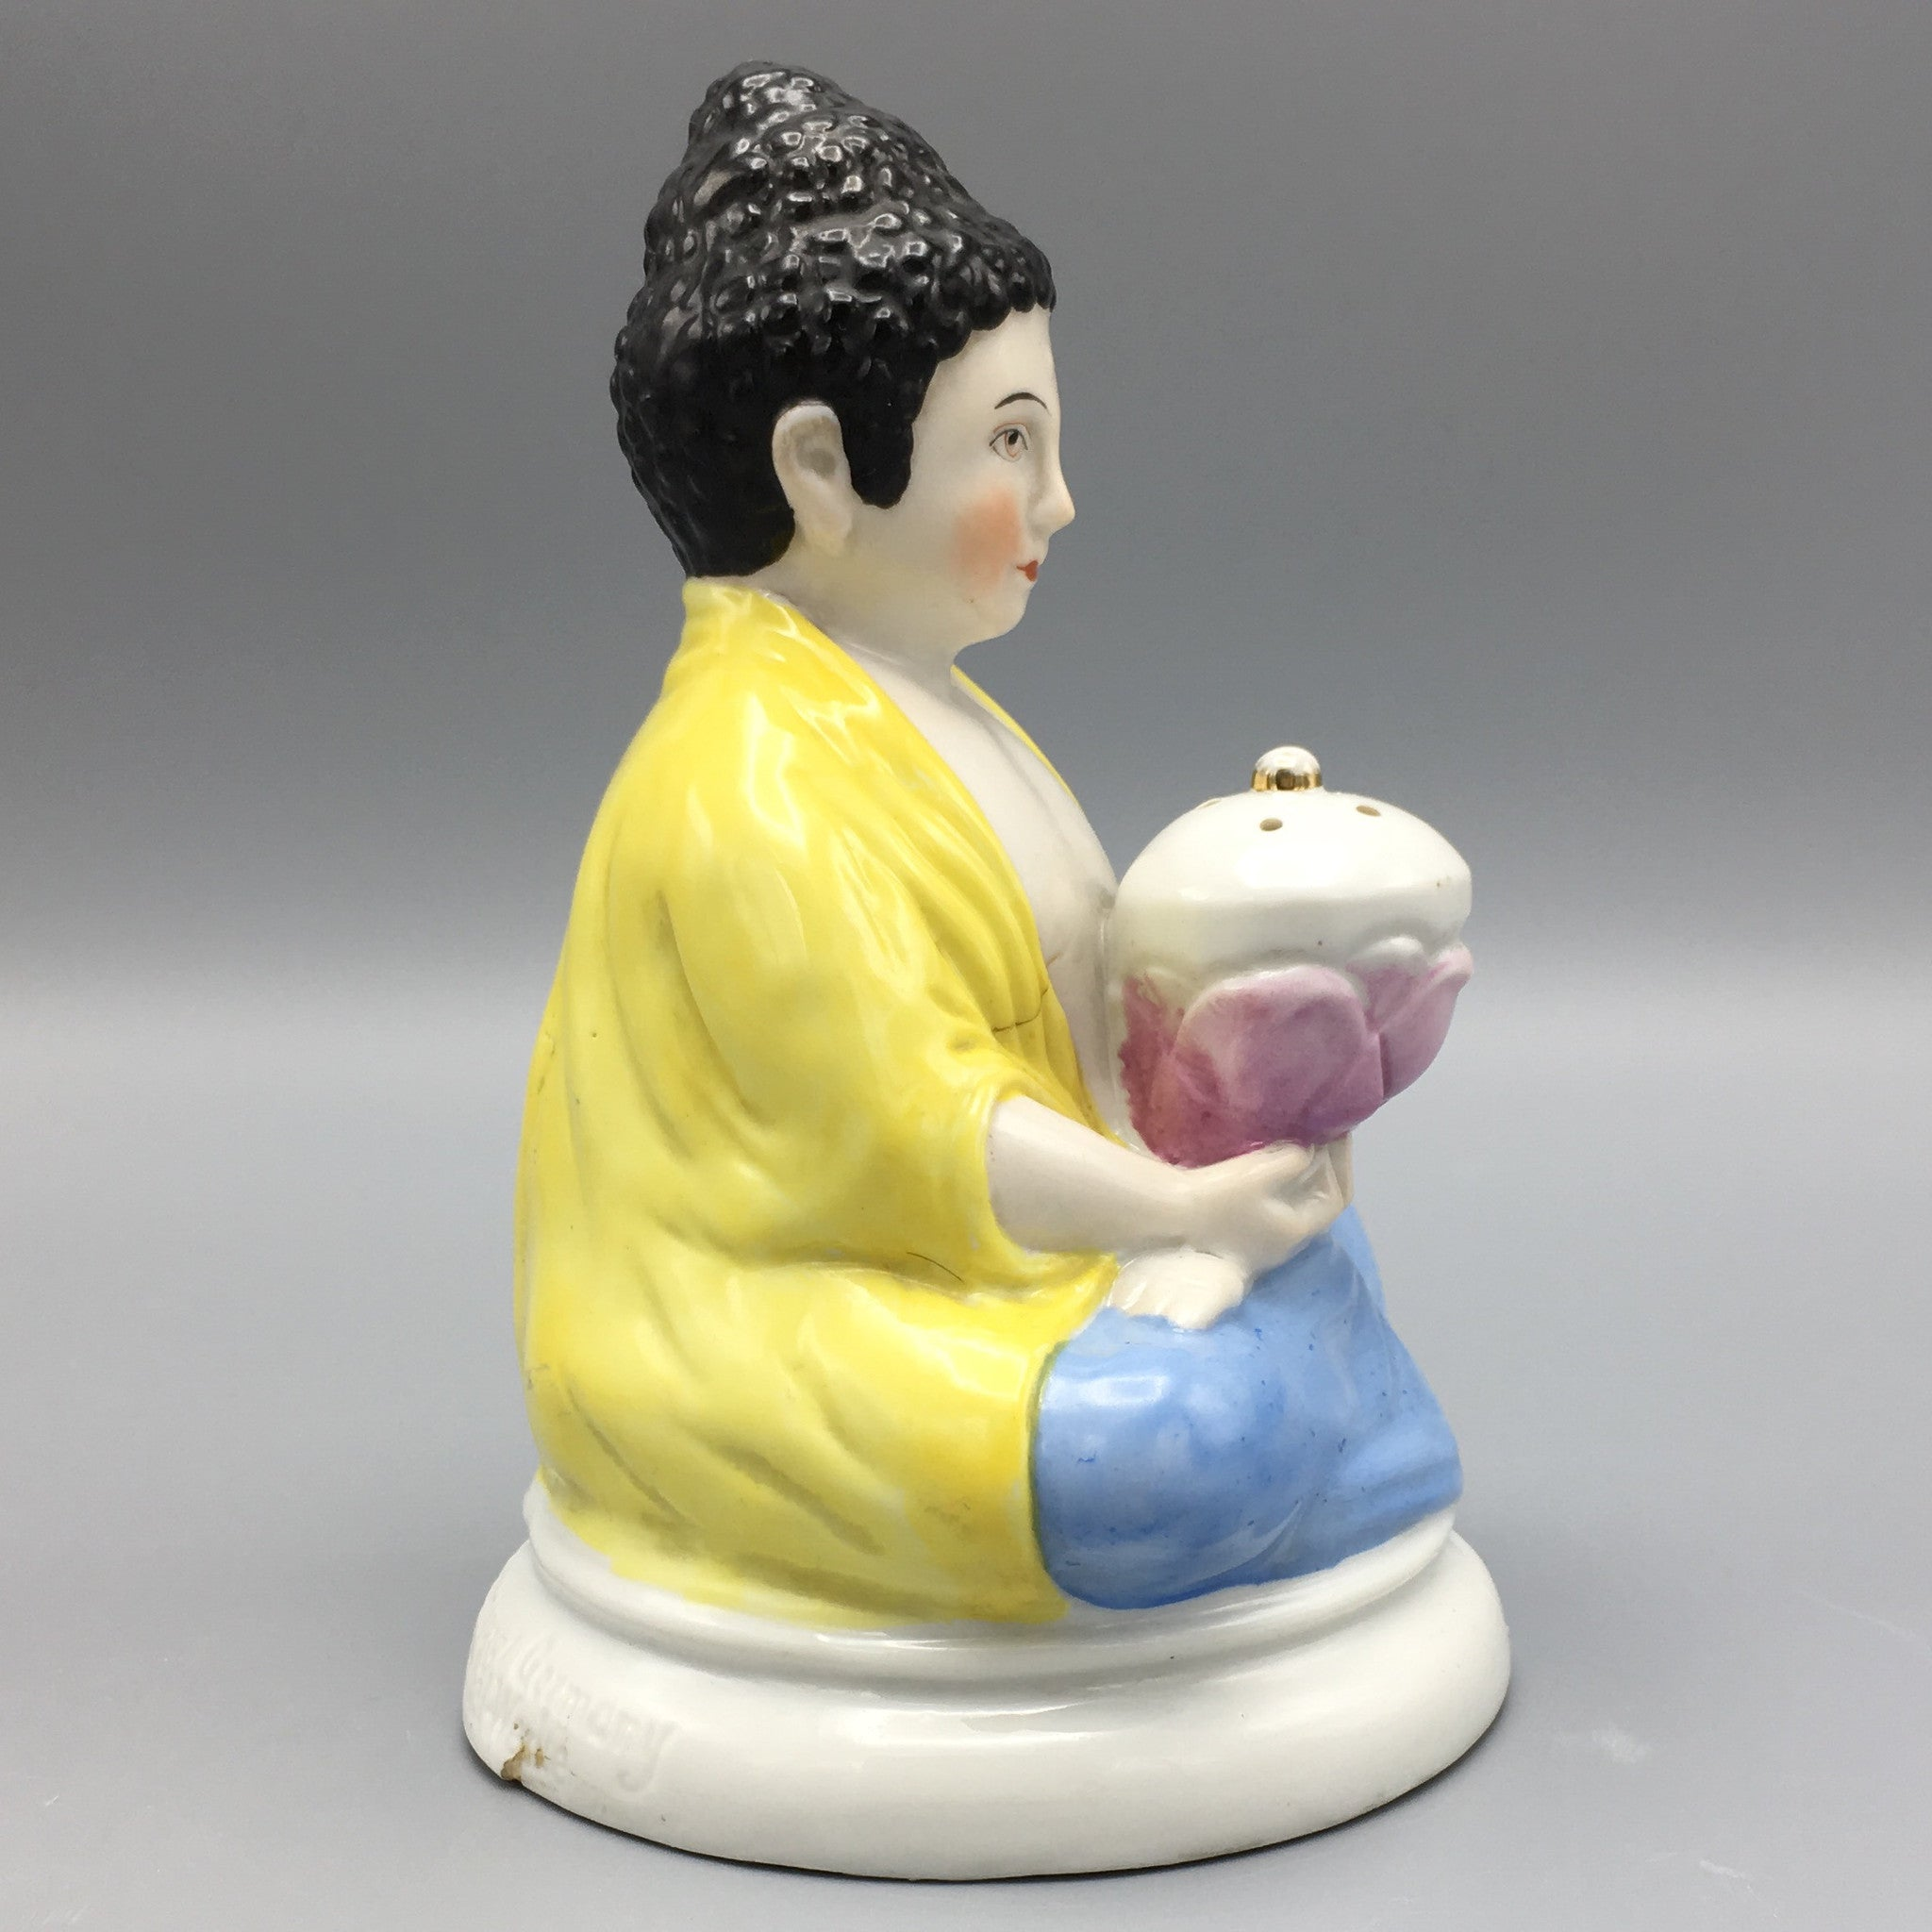 Art Deco 1930s Rosenthal Buddha Figure With Lotus Flower Whistle